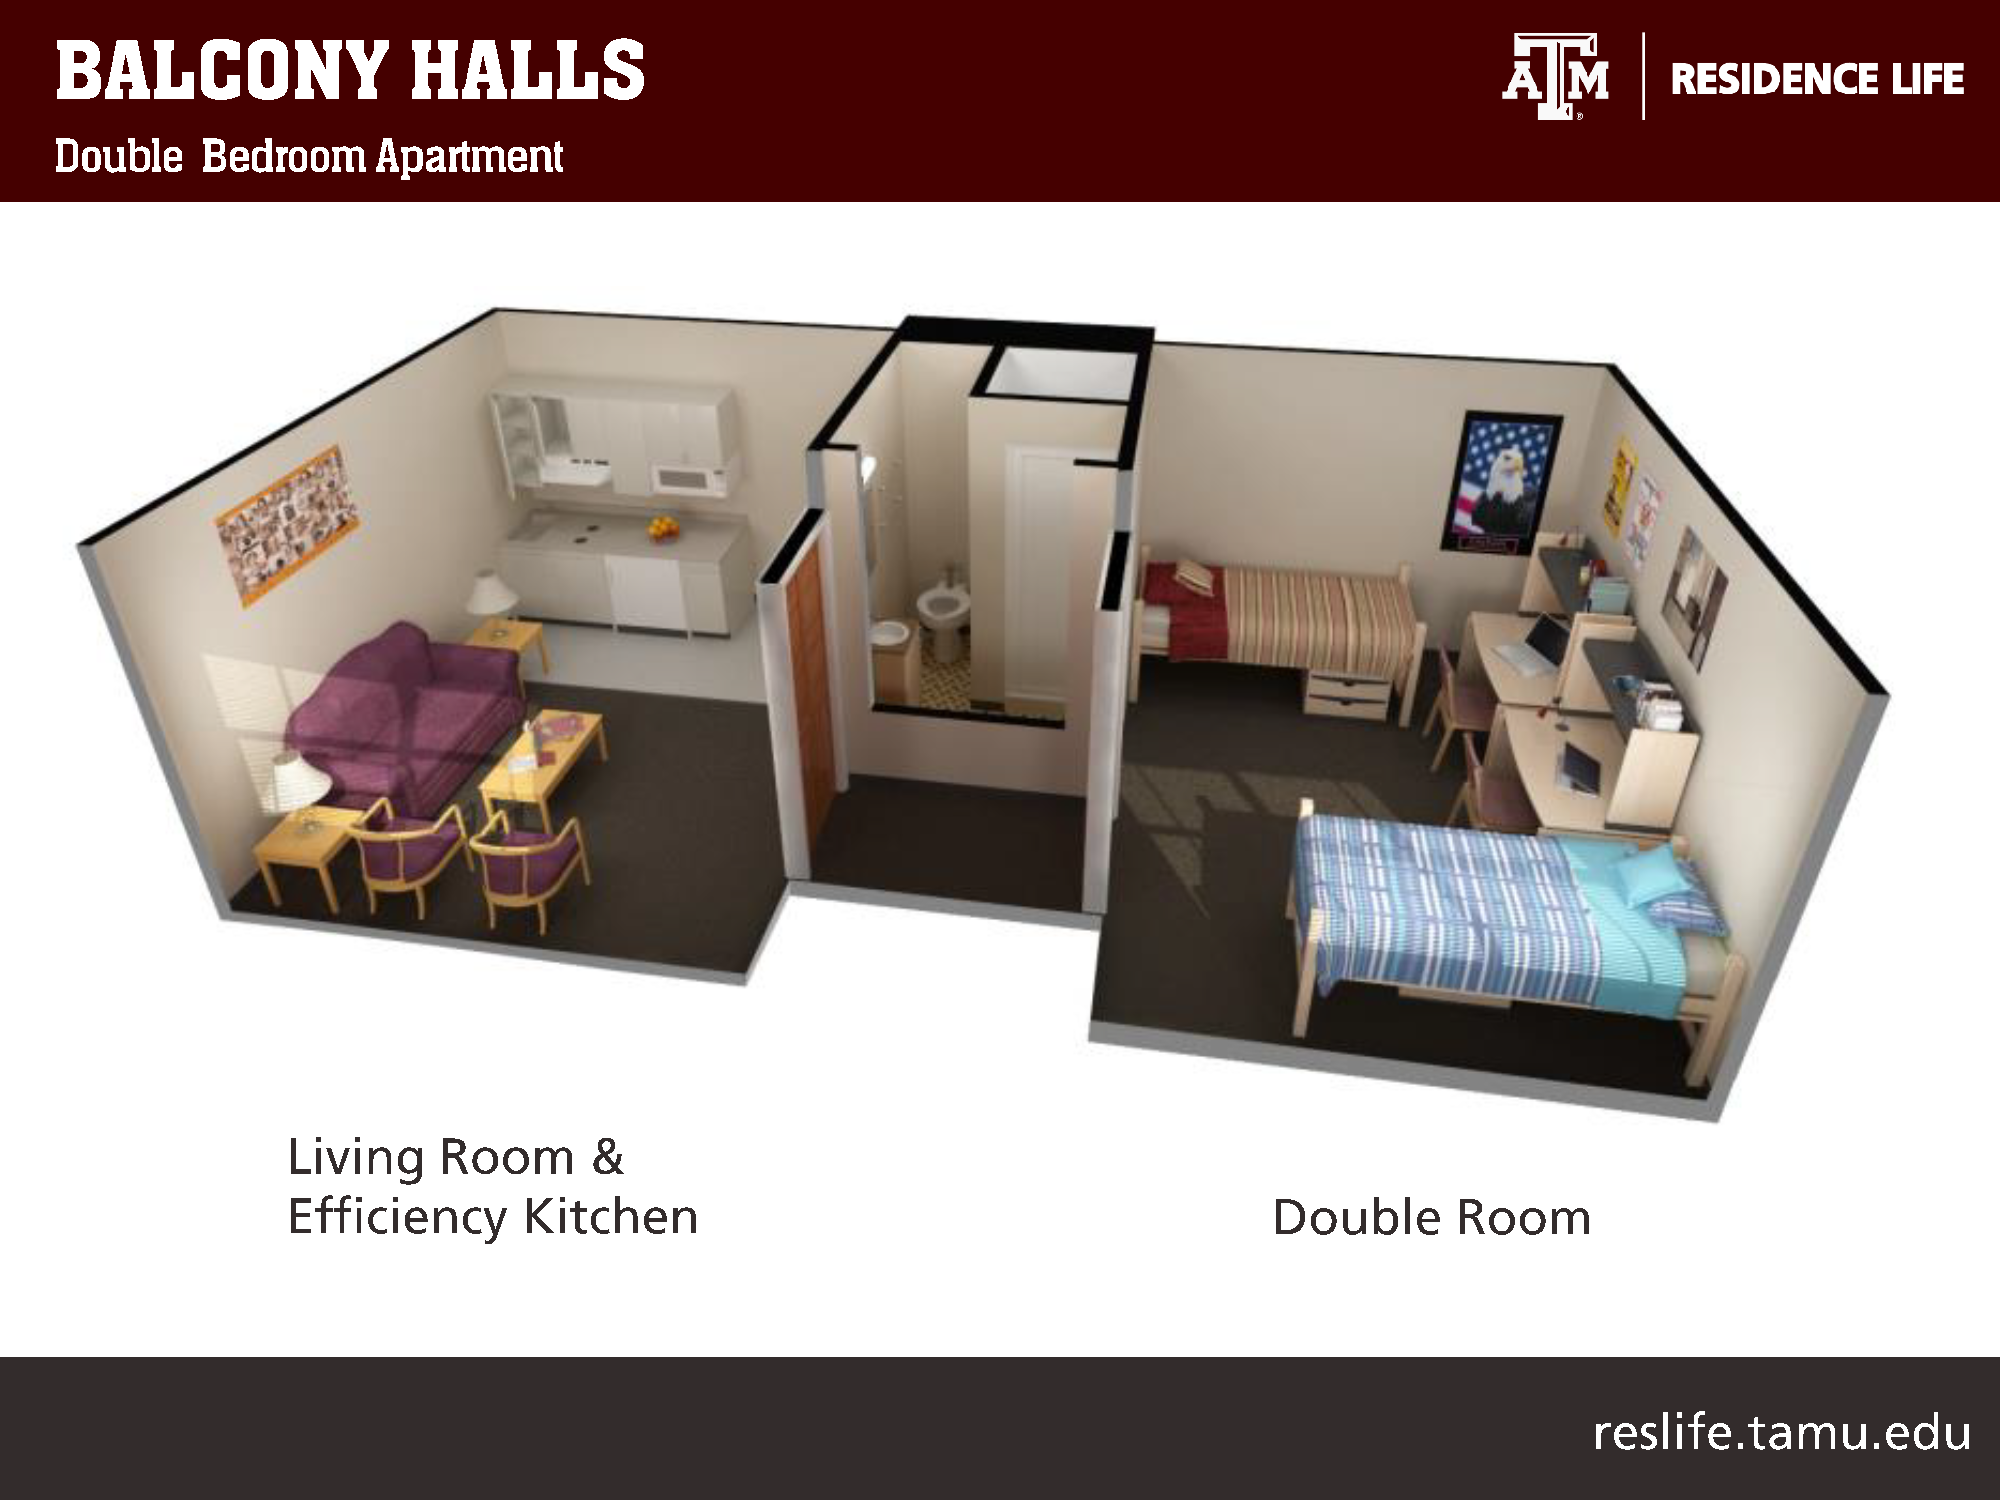 Side-view of 3-D floor plan: Living Room and Efficiency kitchen that has a sofa, two chairs, two nightstands, and a coffee table. Kitchen area has cabinet space, 2 burners, a microwave and refrigerator. Double room has two beds, 2 study desks and chairs, and two cabinets under the bed.